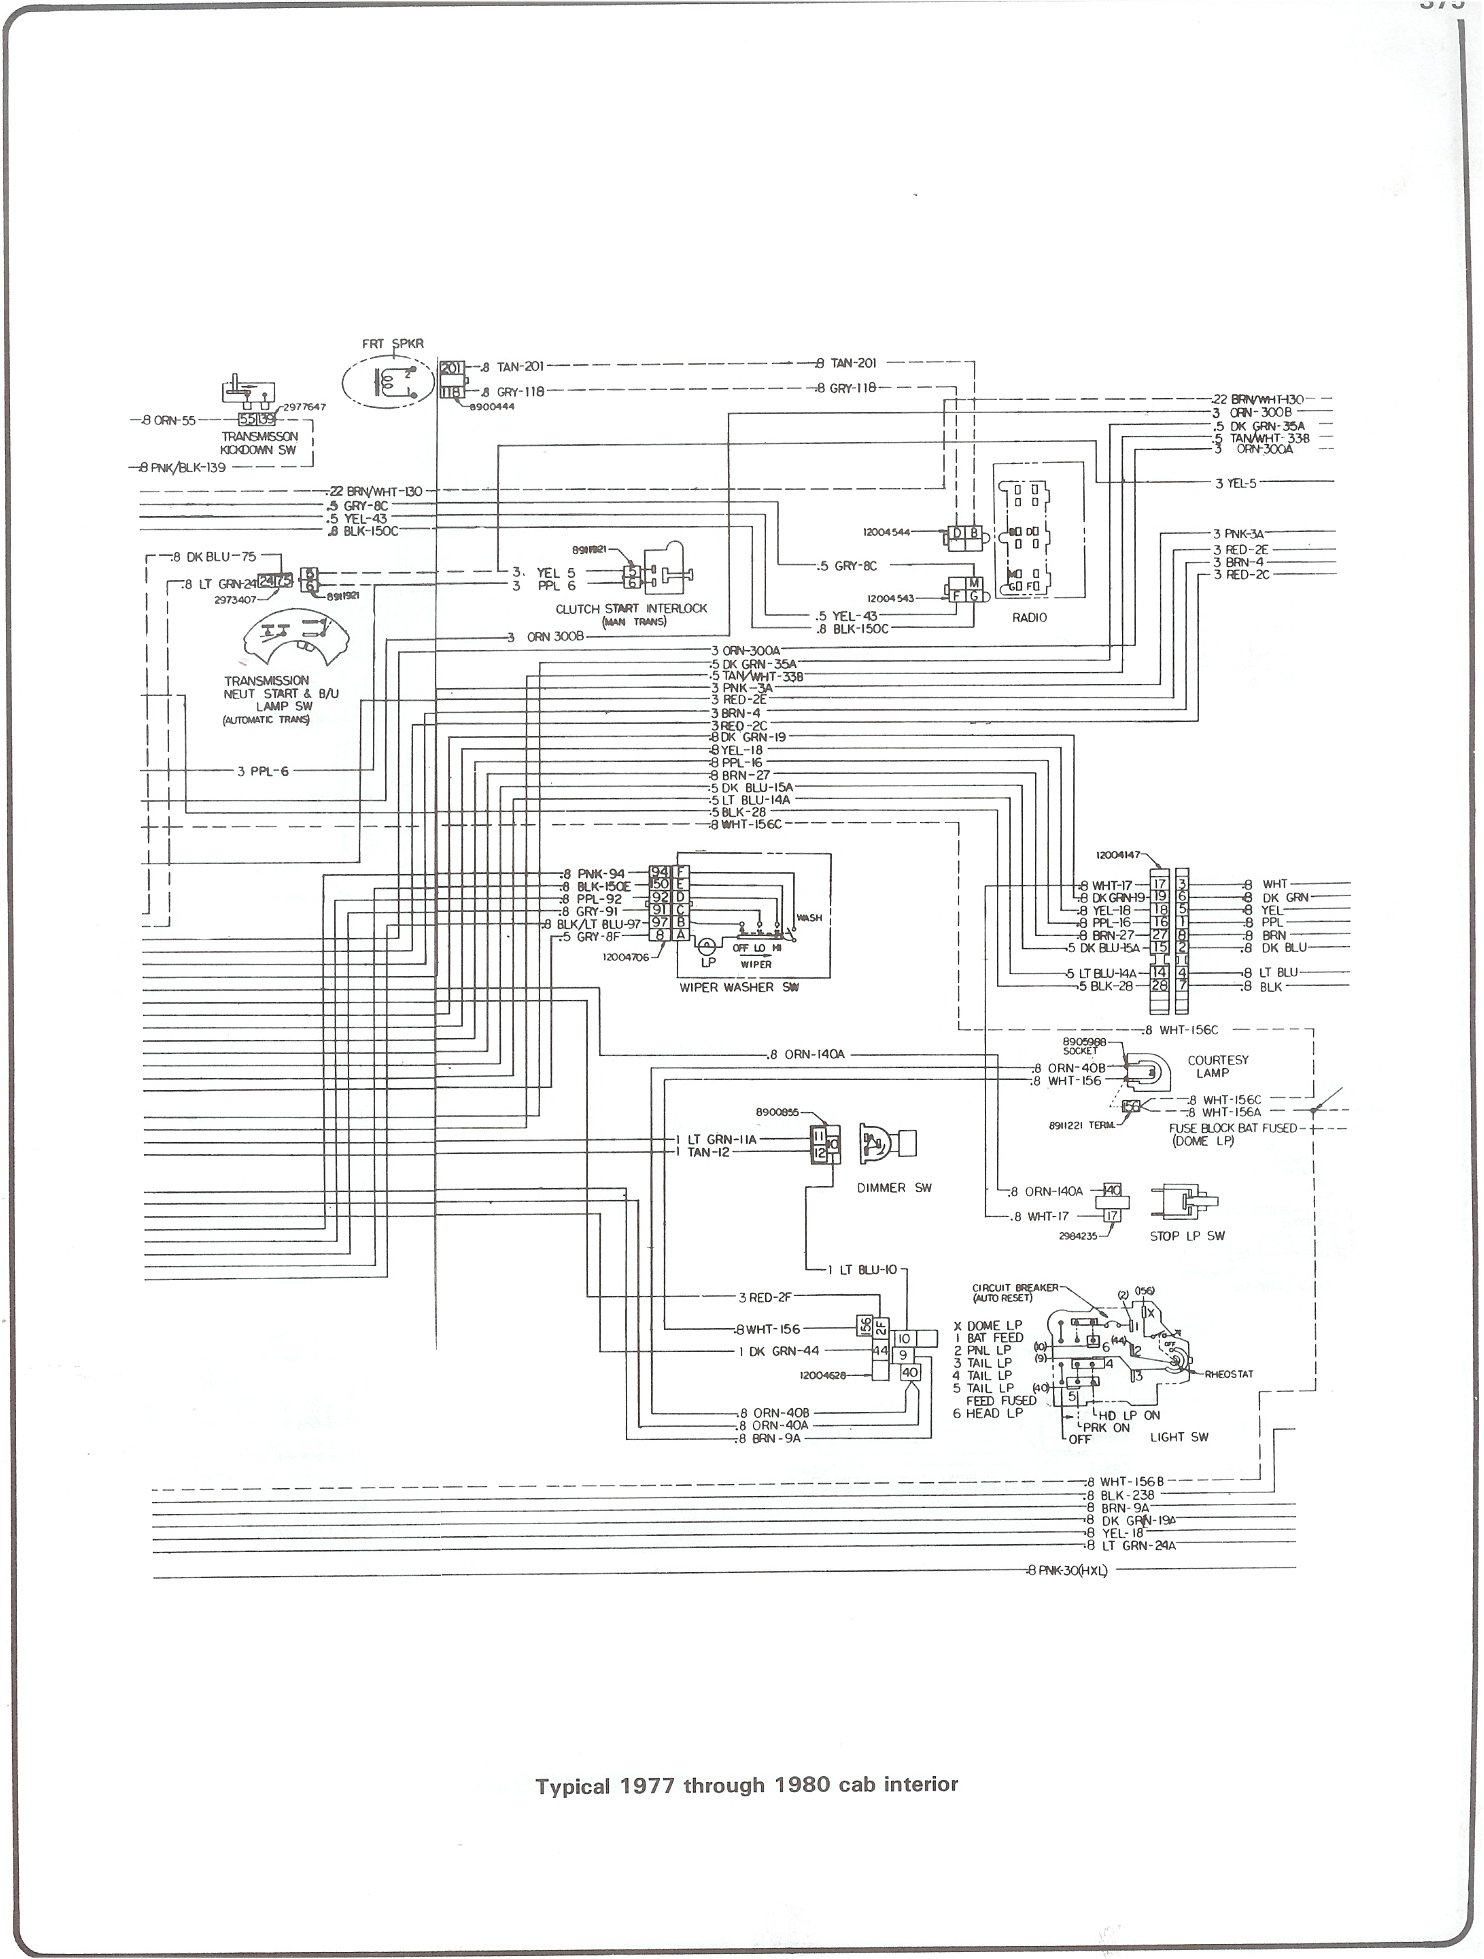 Fise Wiring Diagram 78 Chevy Truck